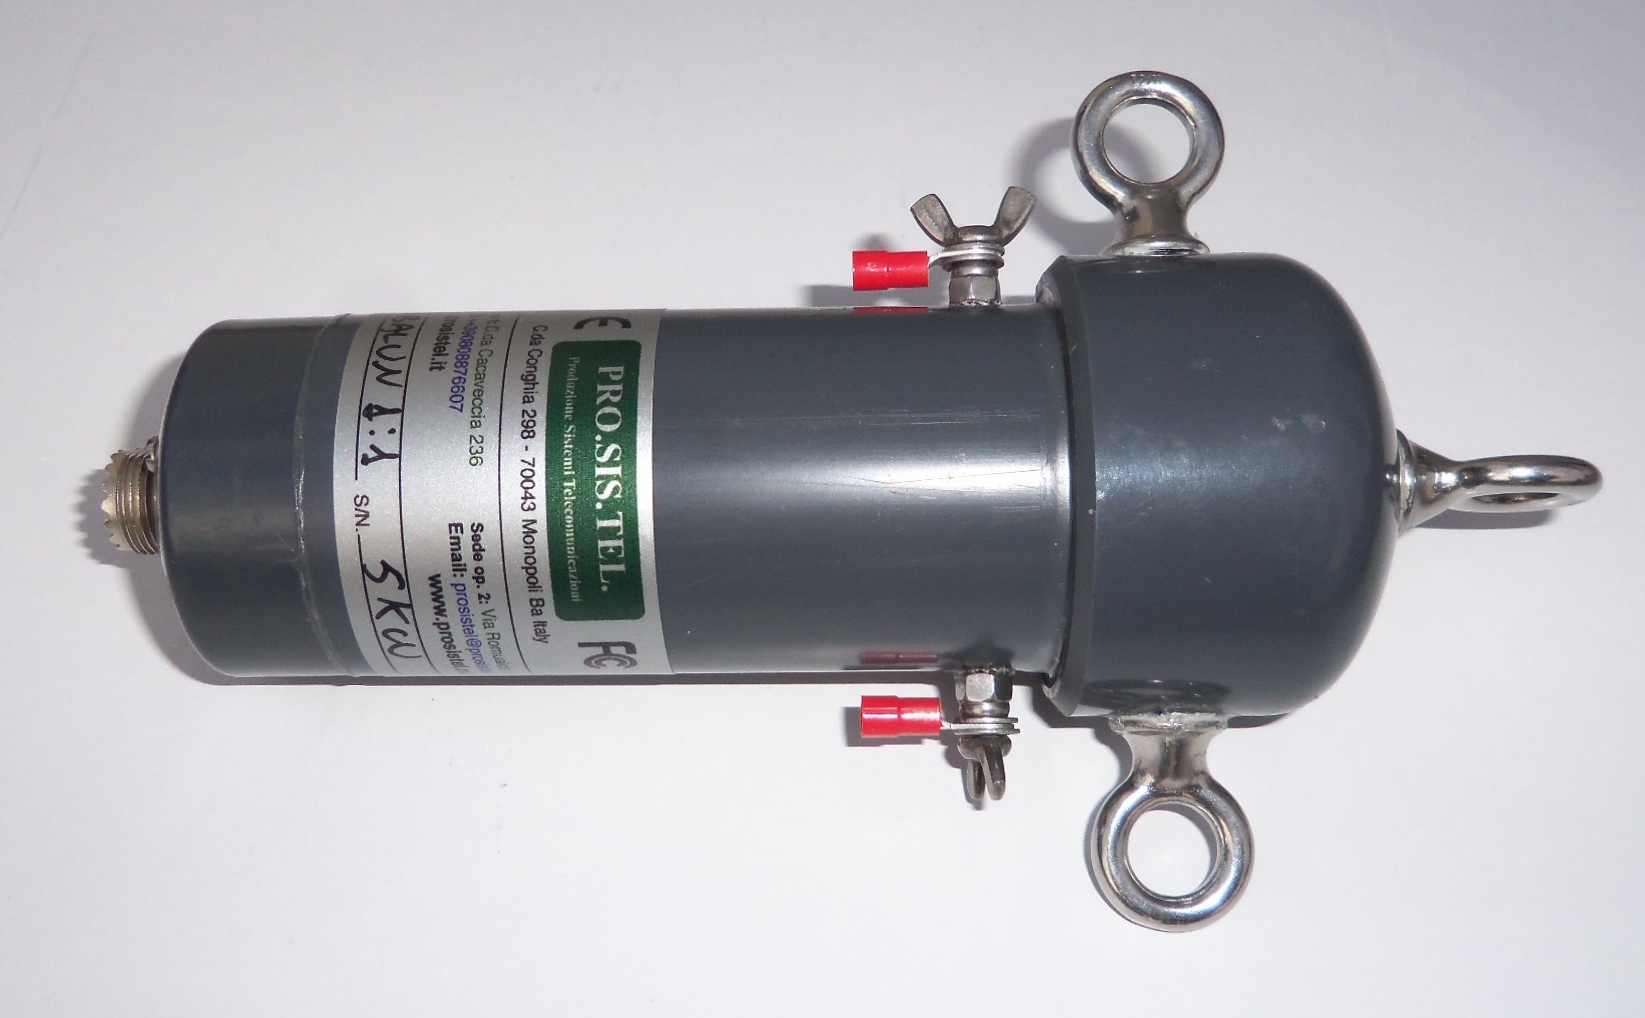 PST-BAL1:1 5KW pep Balun per dipolo filsre Nucleo ferrite